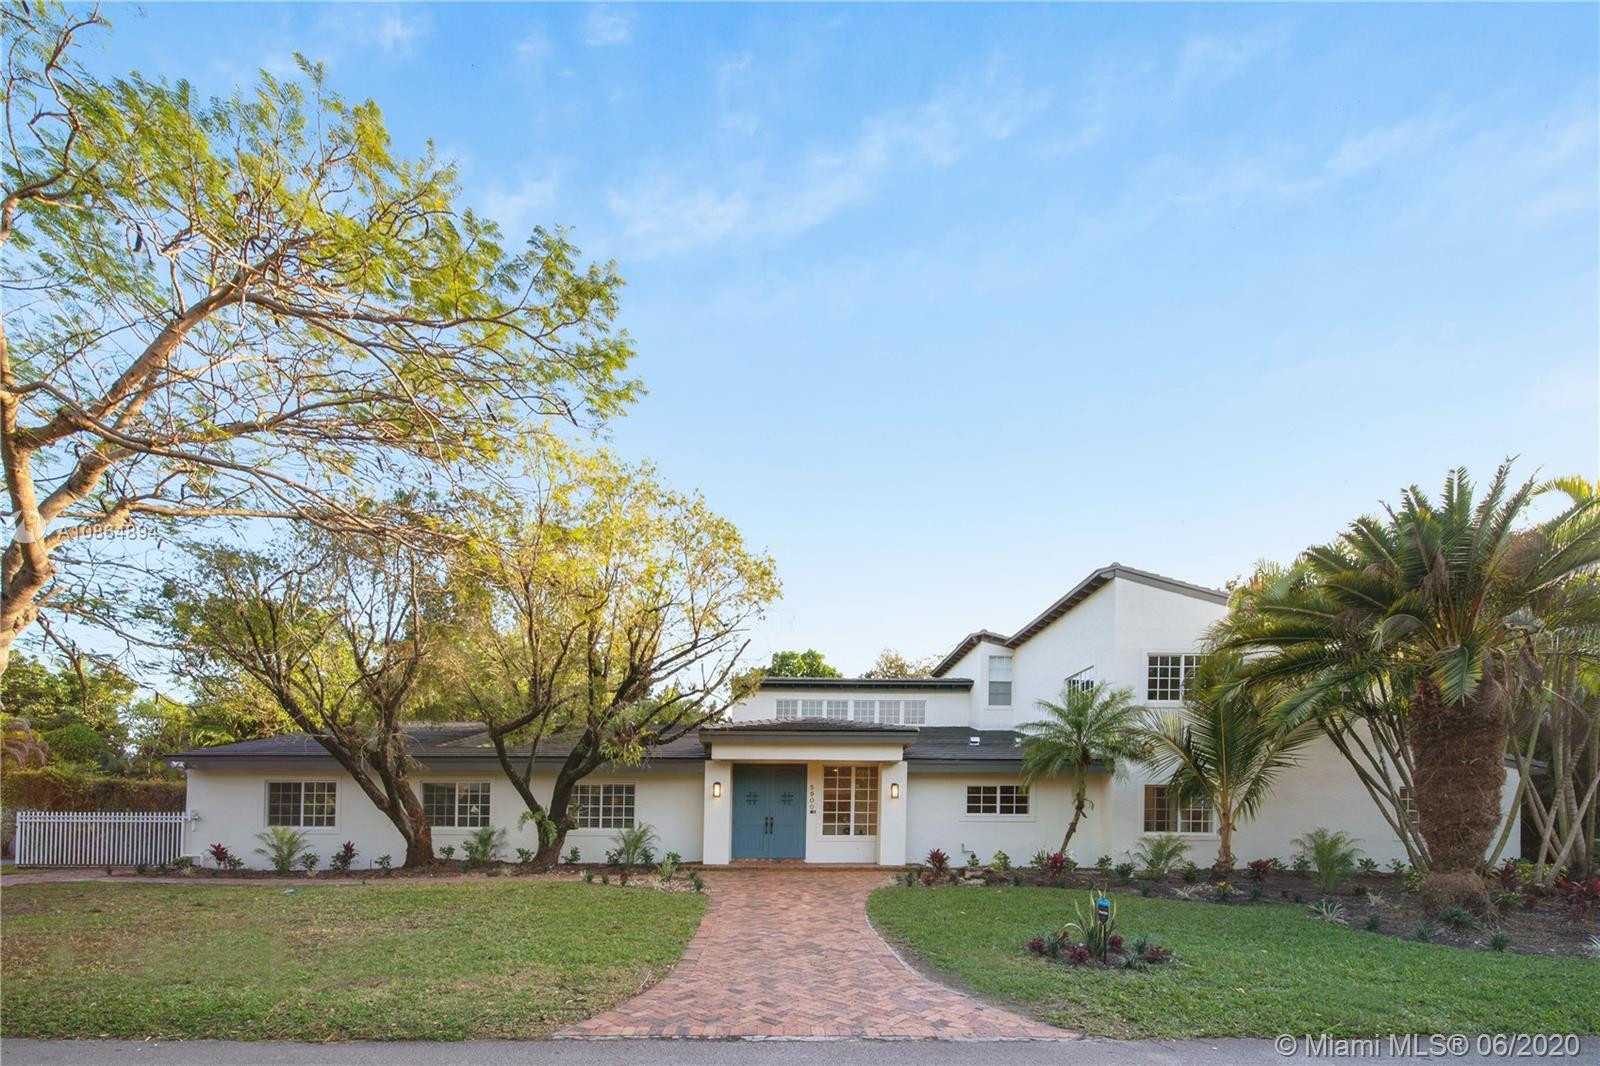 GORGEOUS BEAUTIFULLY APPOINTED, TWO STORY, COMPLETELY REMODELED 6 BEDROOM 5 BATH HOME, LOCATED IN TH